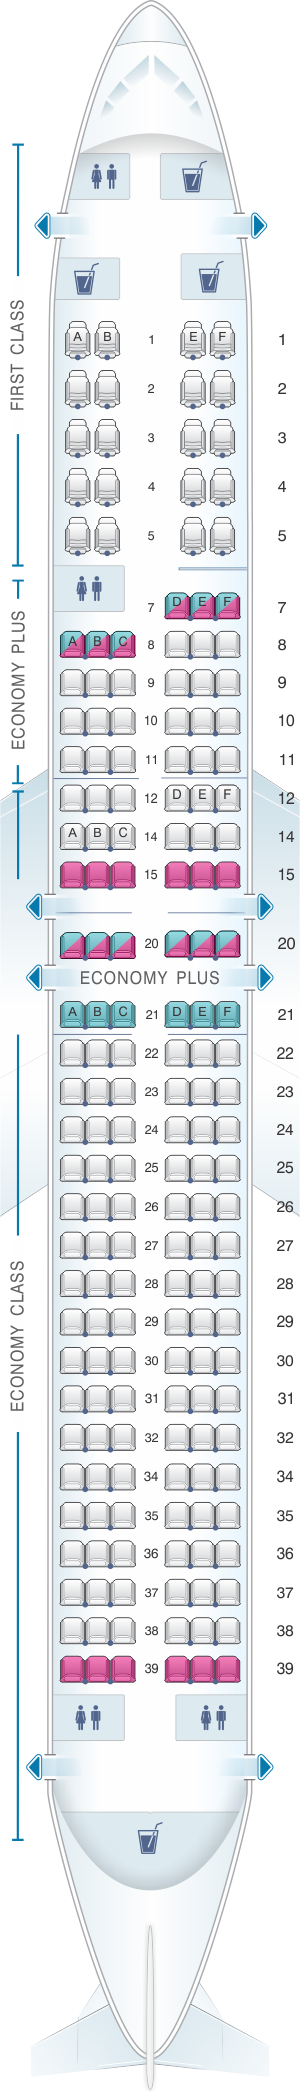 Seat map for United Airlines Boeing B737 900 - version 3